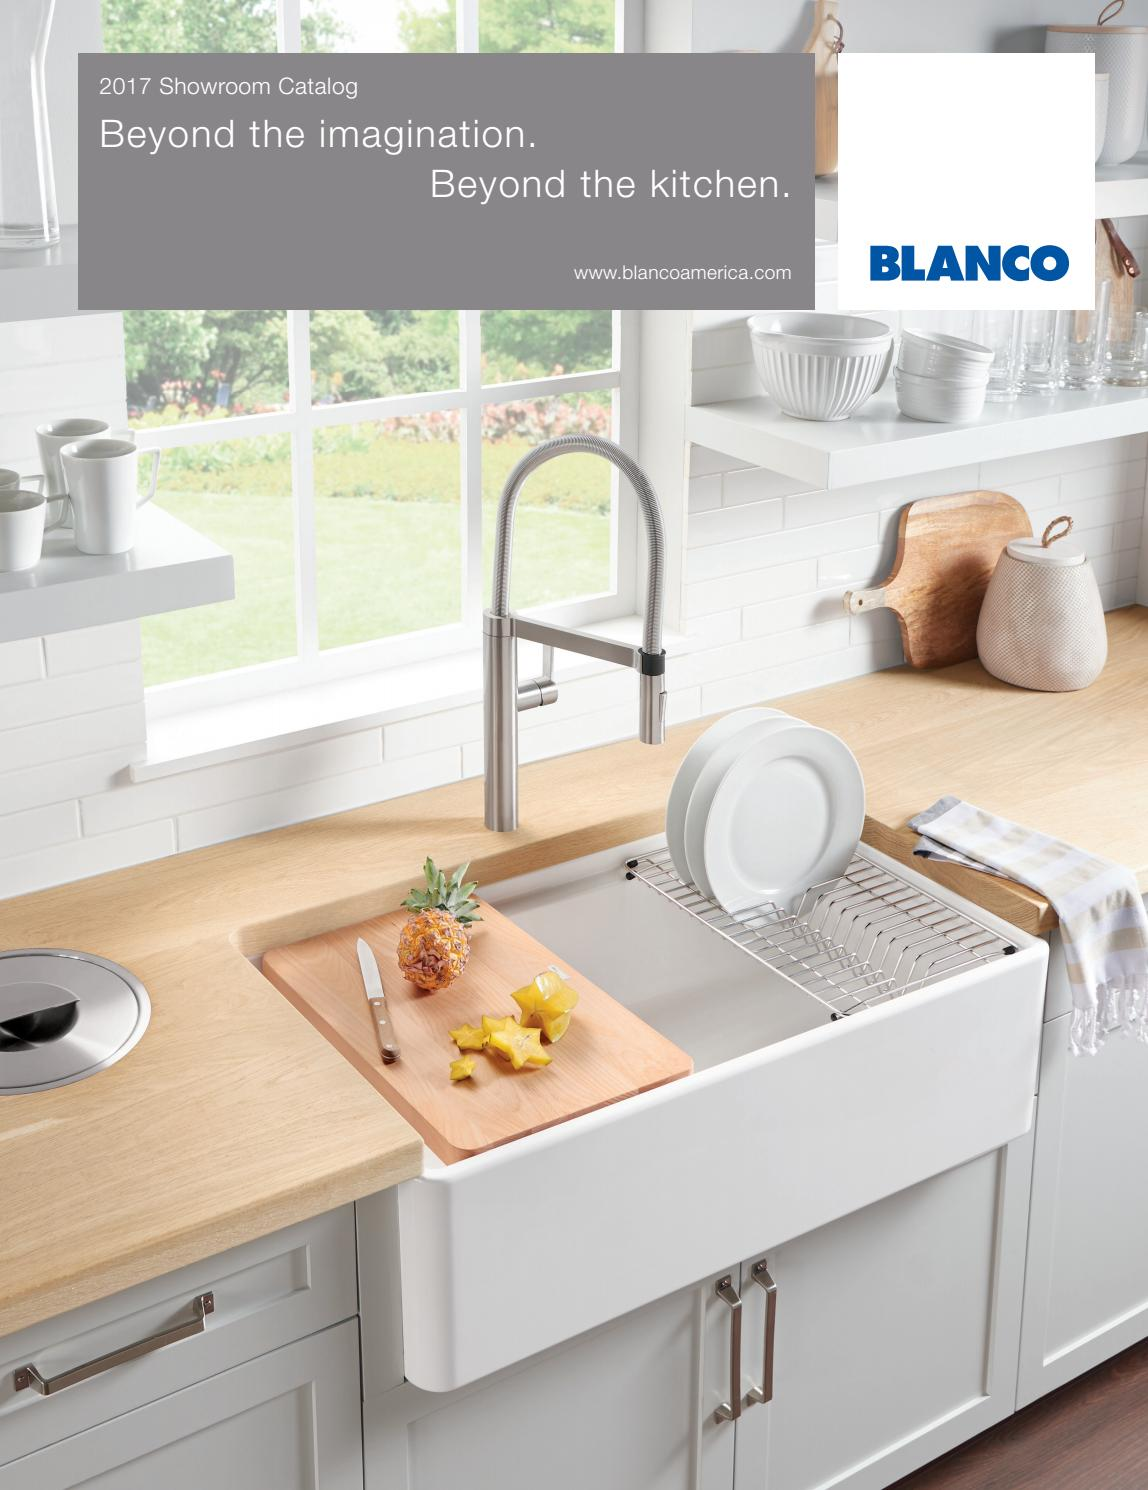 Blanco 2017 showroom catalog by lori dolnick issuu for Blancoamerica com kitchen sinks